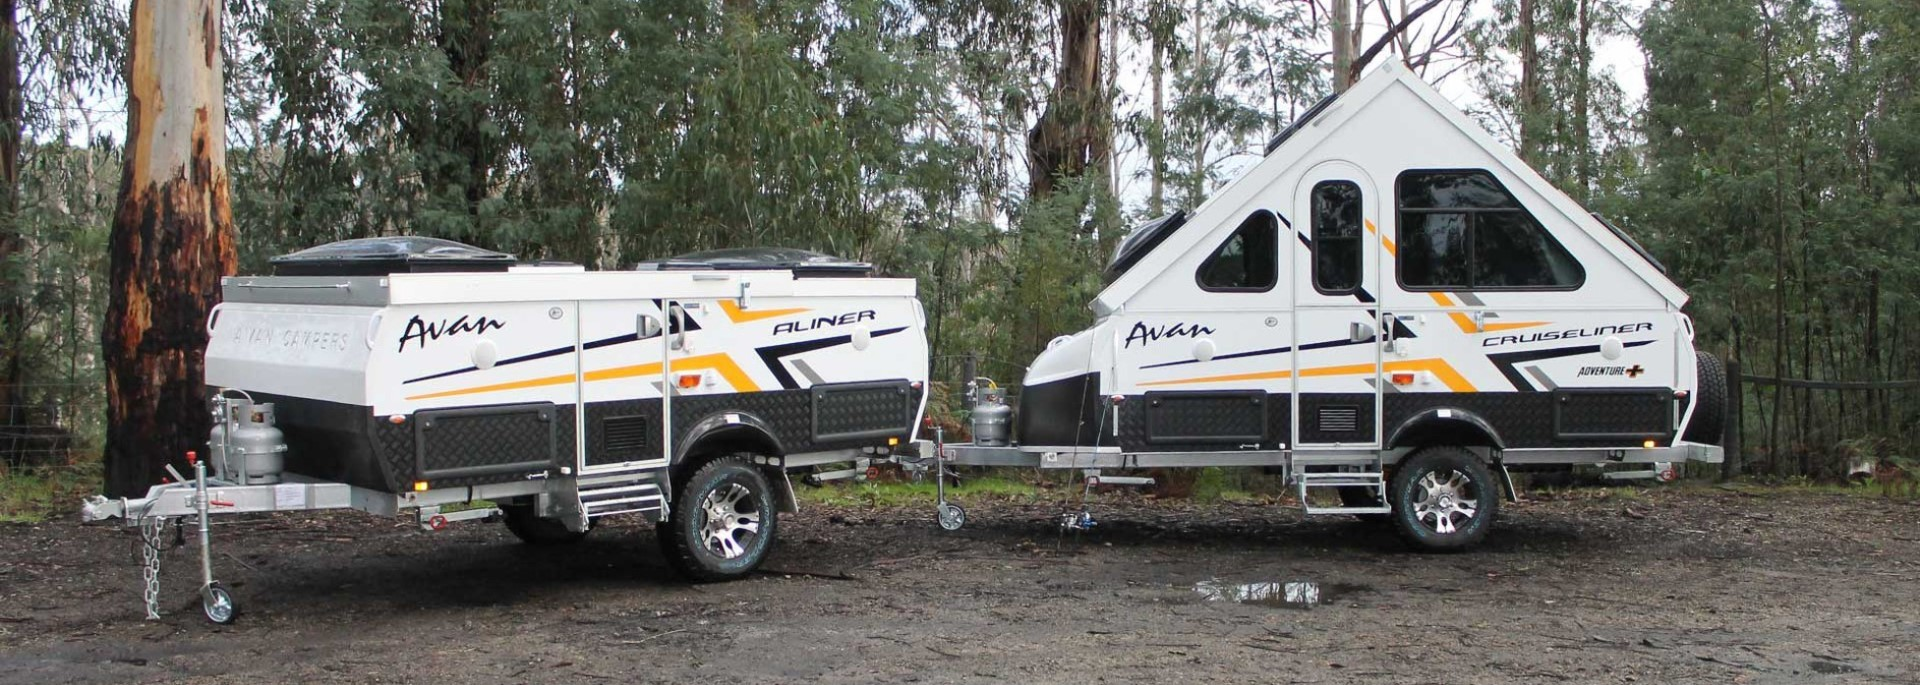 Campers Caravans & Motorhomes for everyone